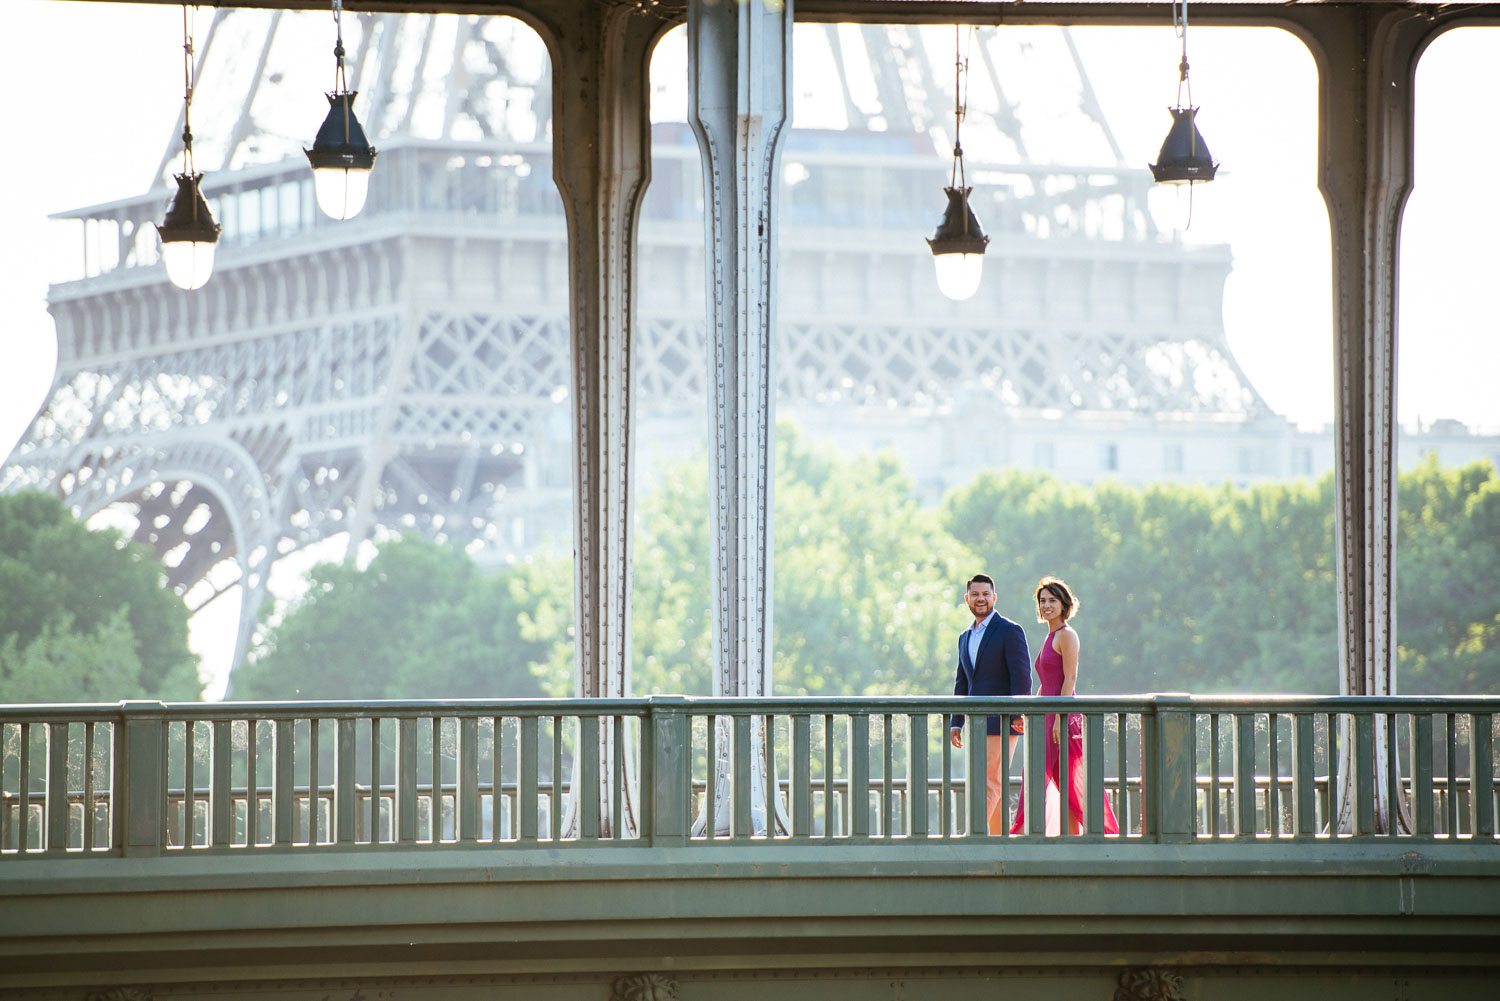 Copy of Copy of Paris honeymoon photoshoot by Paris photographer Shantha